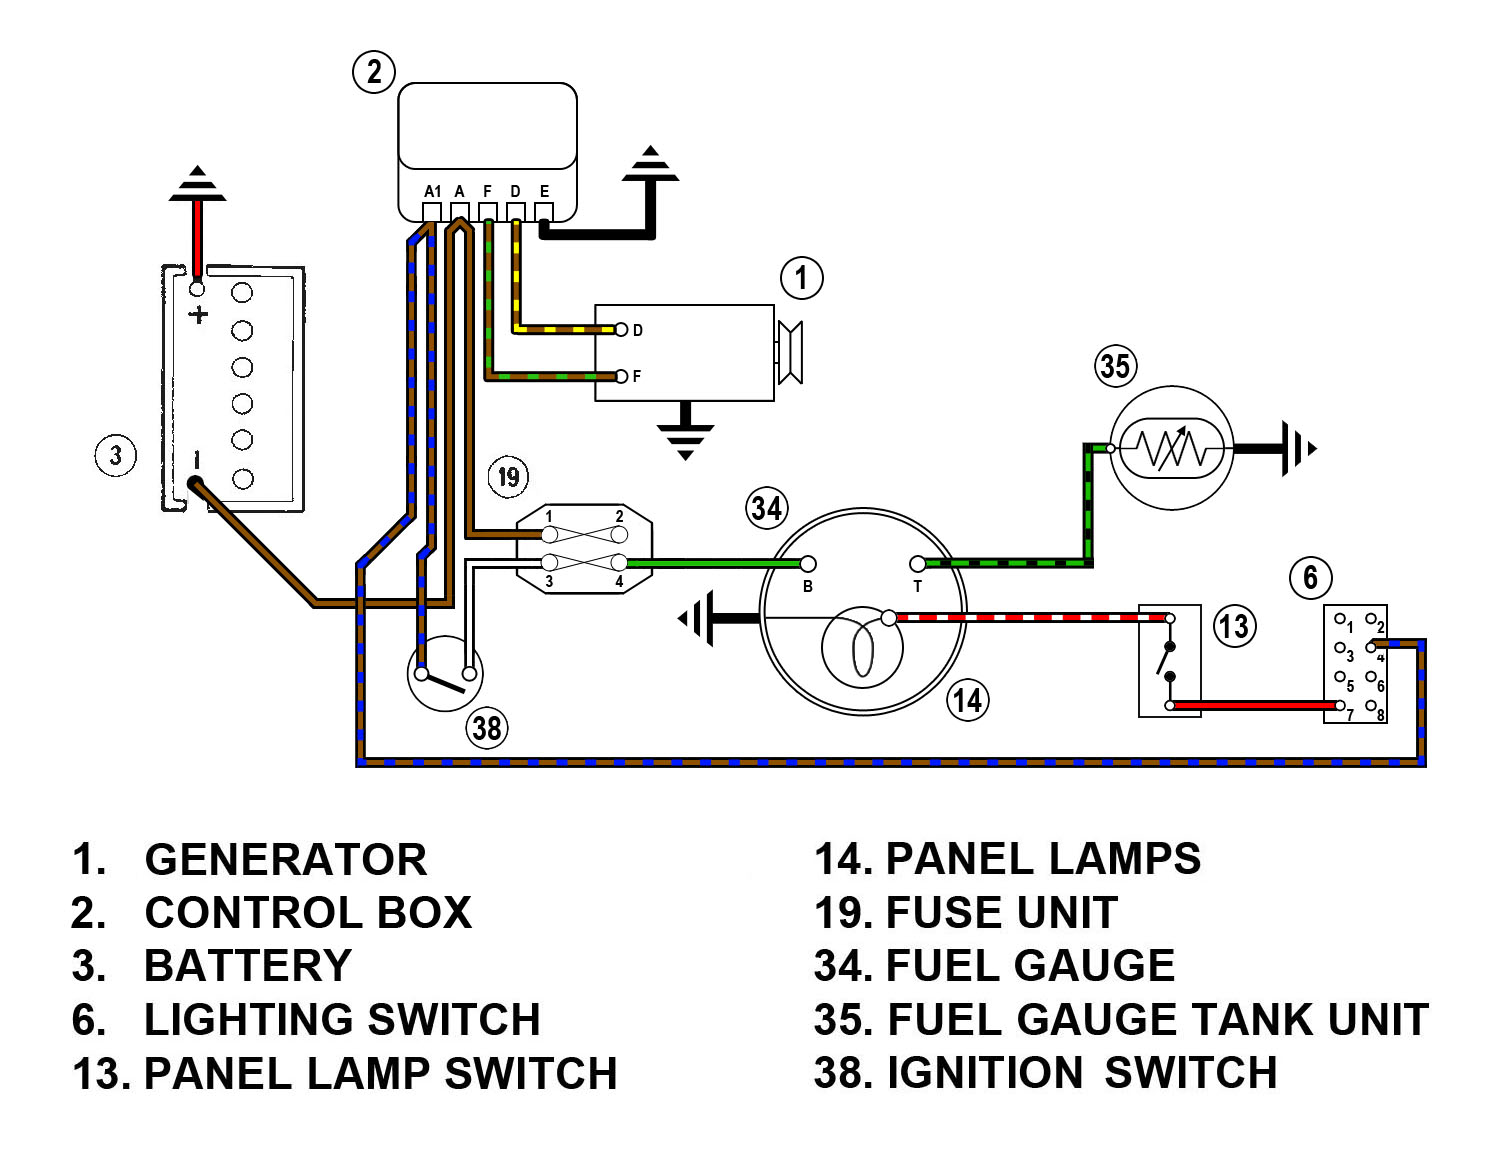 hight resolution of spridgetguru com tech index fuel gauge wiring diagram equus fuel gauge wiring diagram fuel gauge wiring diagram